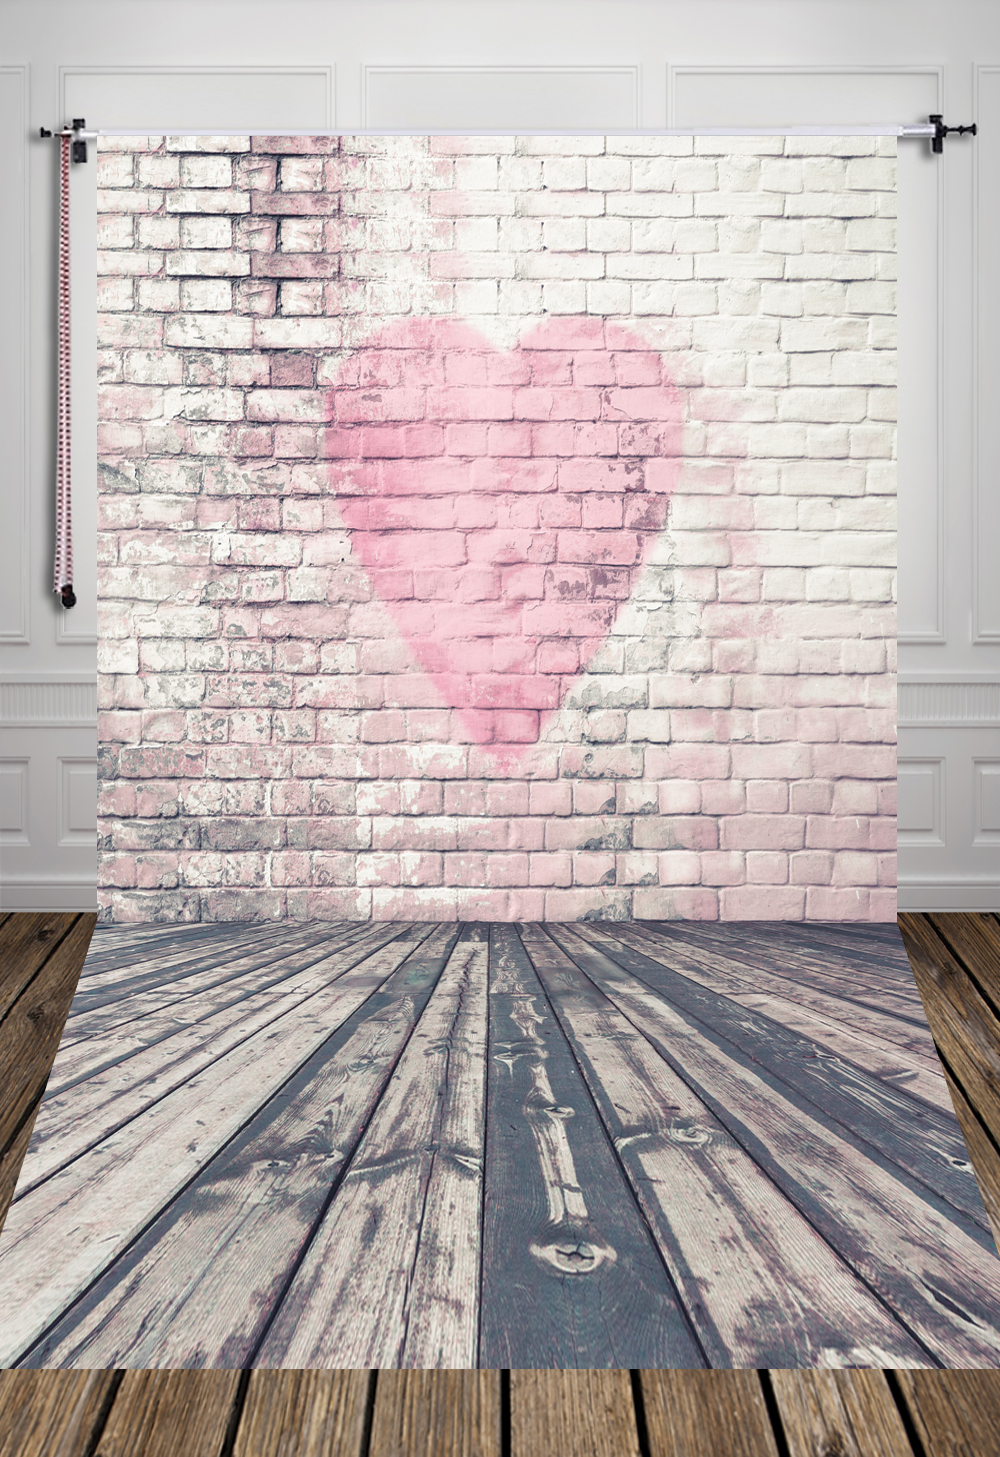 8X8ft(2.5x2.5m) brick and wood floor photography backdrop background for studio newborn printed with pink heart D-1496 8x10ft valentine s day photography pink love heart shape adult portrait backdrop d 7324